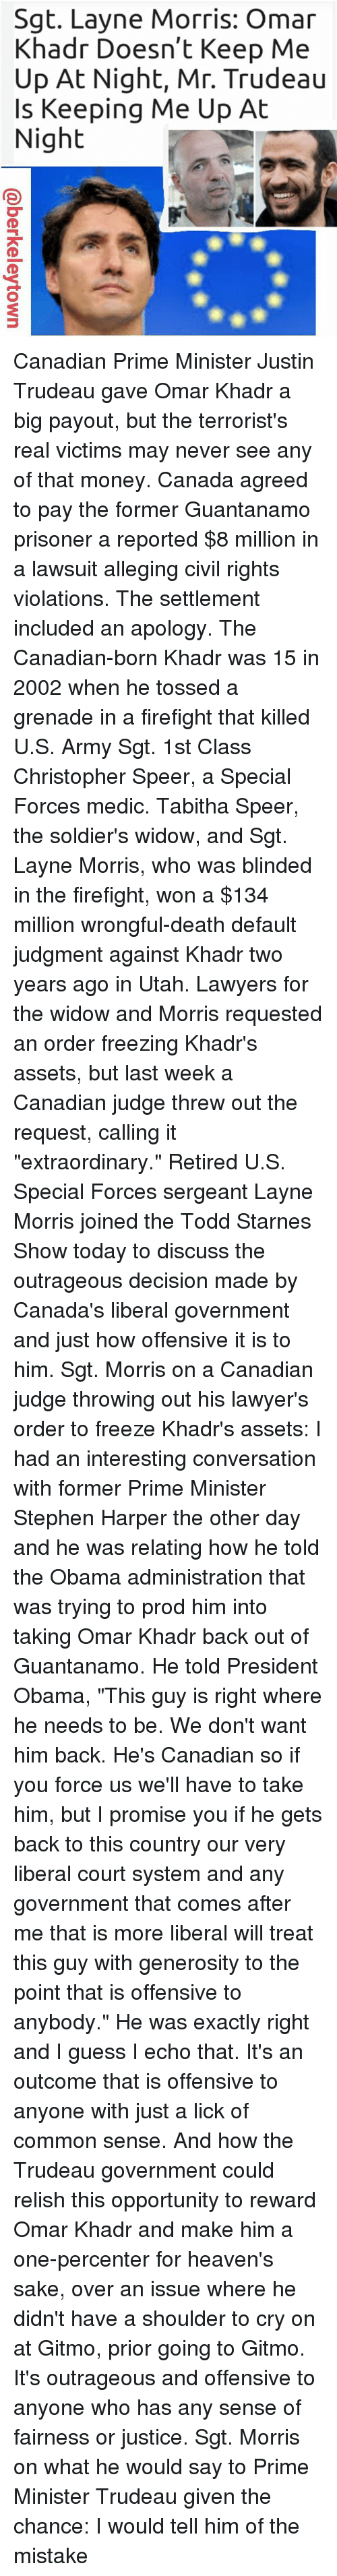 https://pics.me.me/sgt-layne-morris-omar-khadr-doesnt-keep-me-up-at-25597876.png